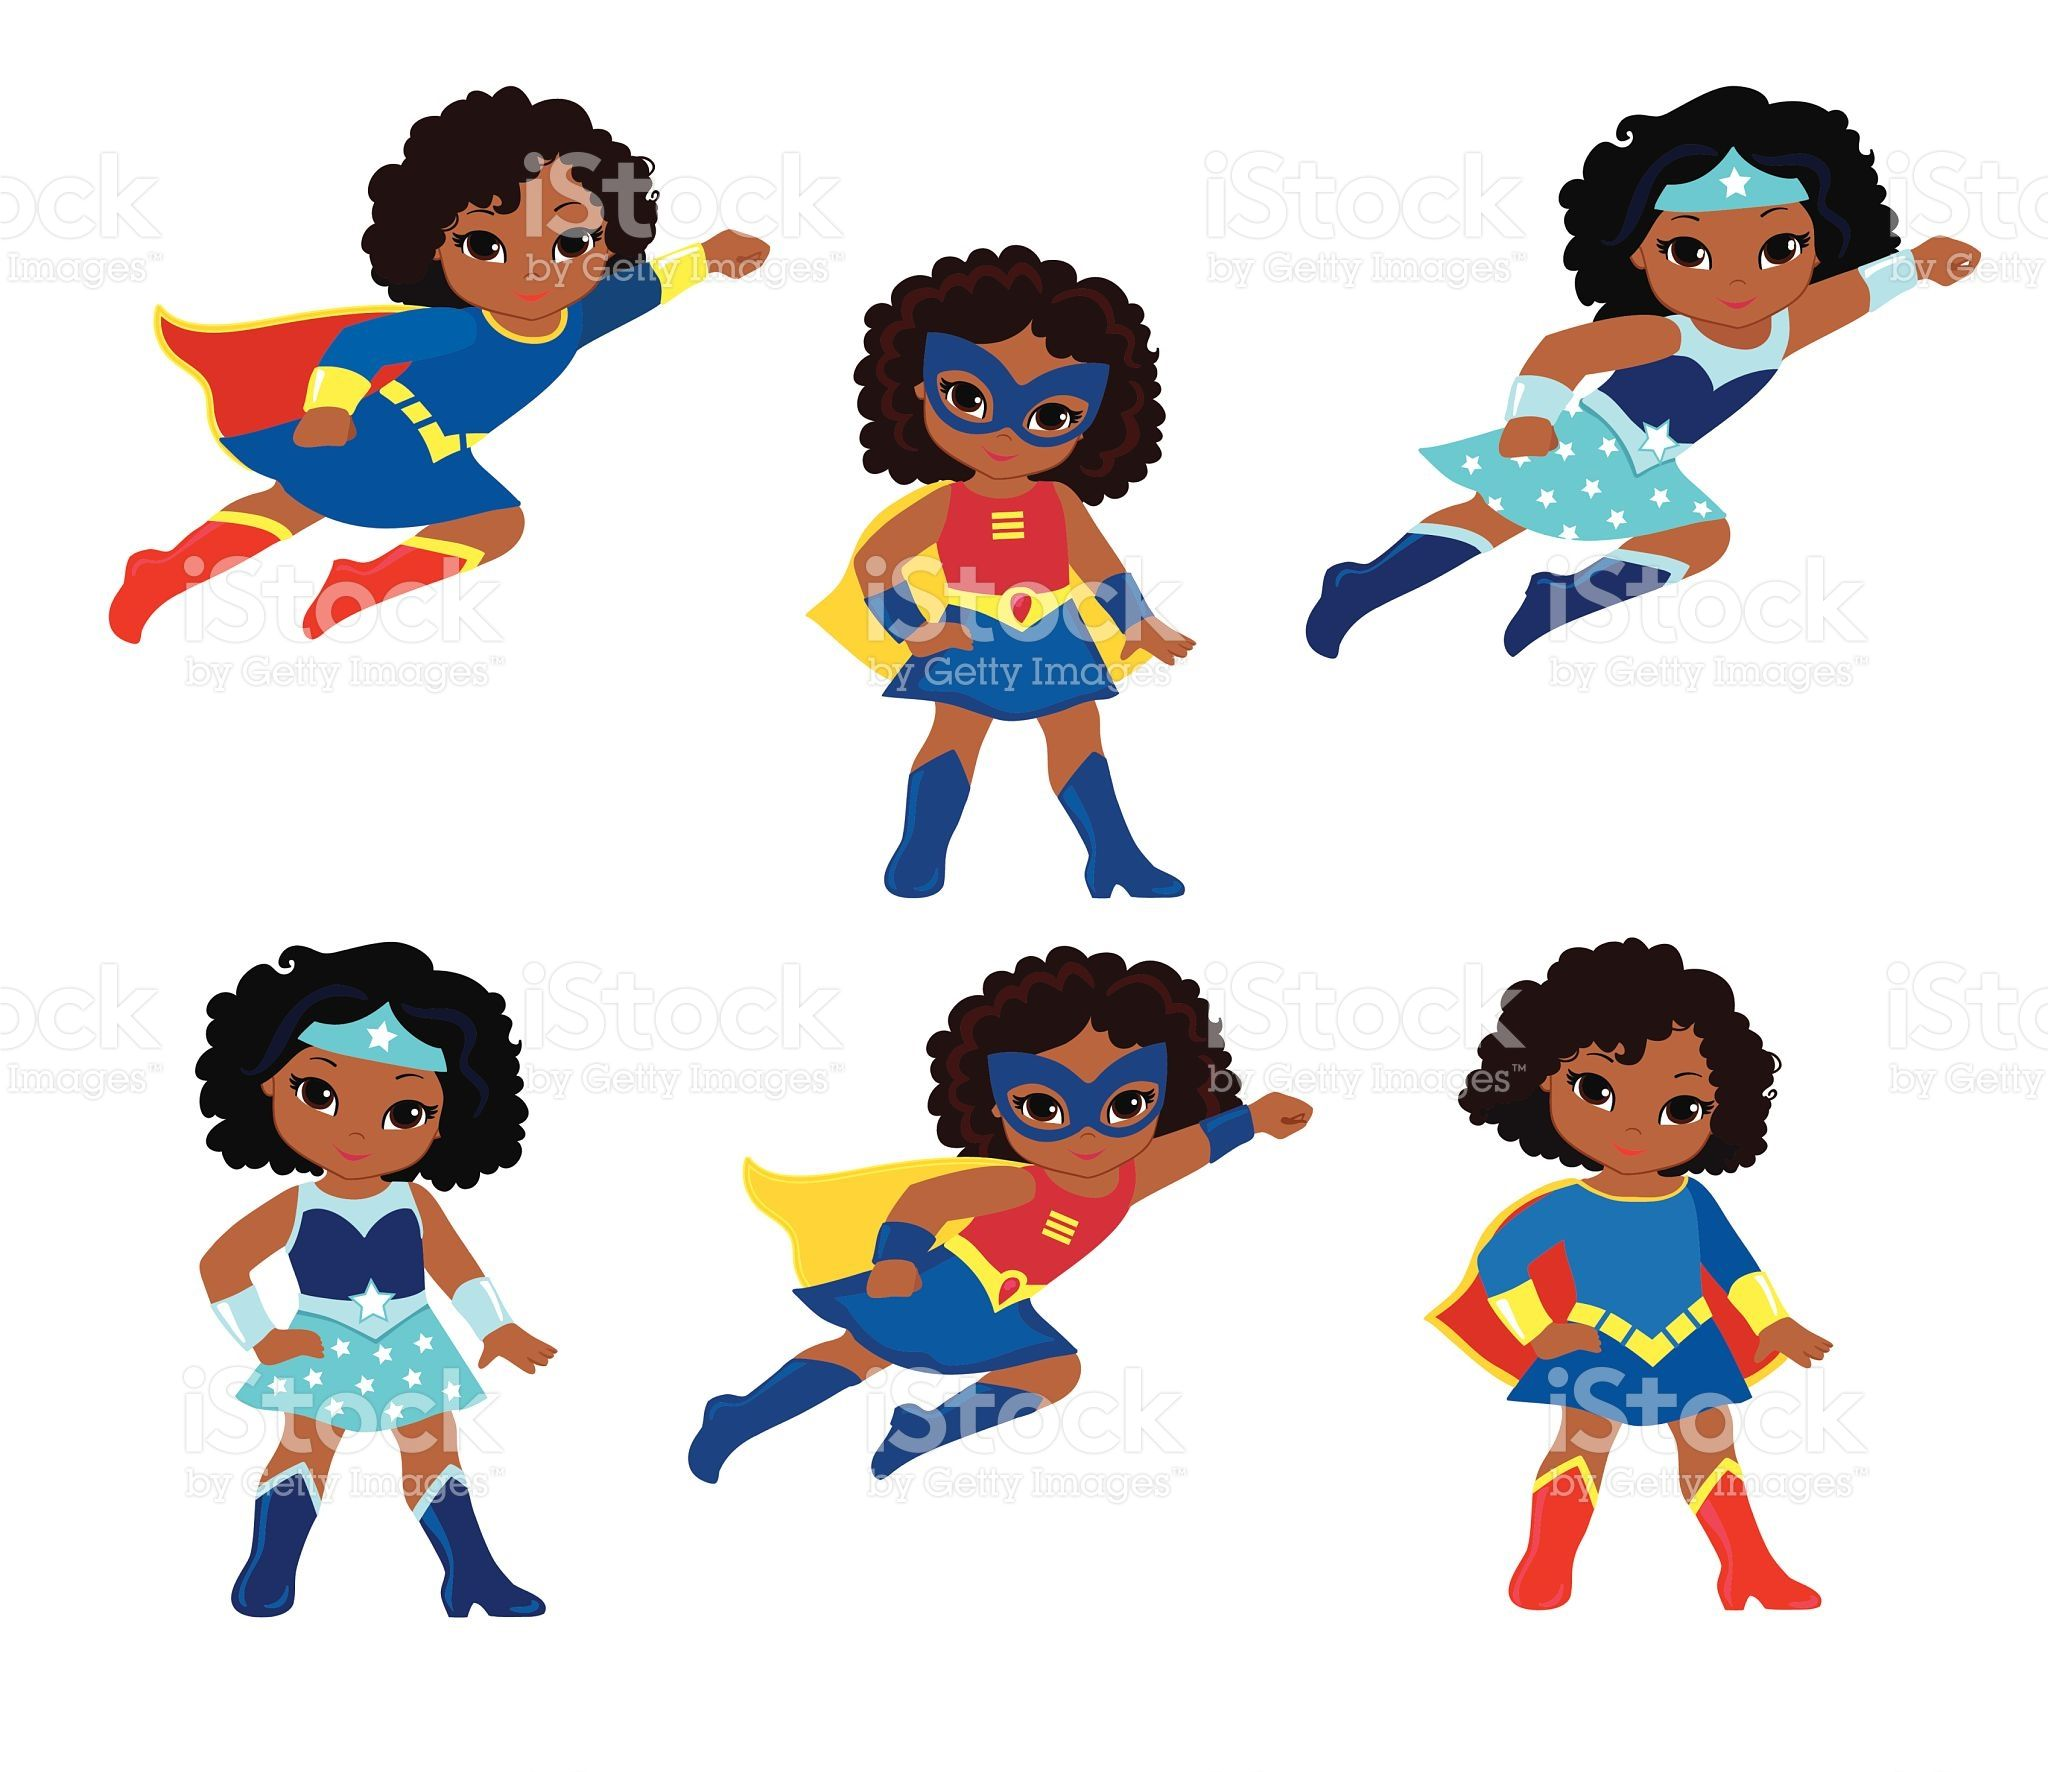 African american woman party clipart clipart royalty free library African American Cute superhero girl vector clip art set.   FARE ... clipart royalty free library